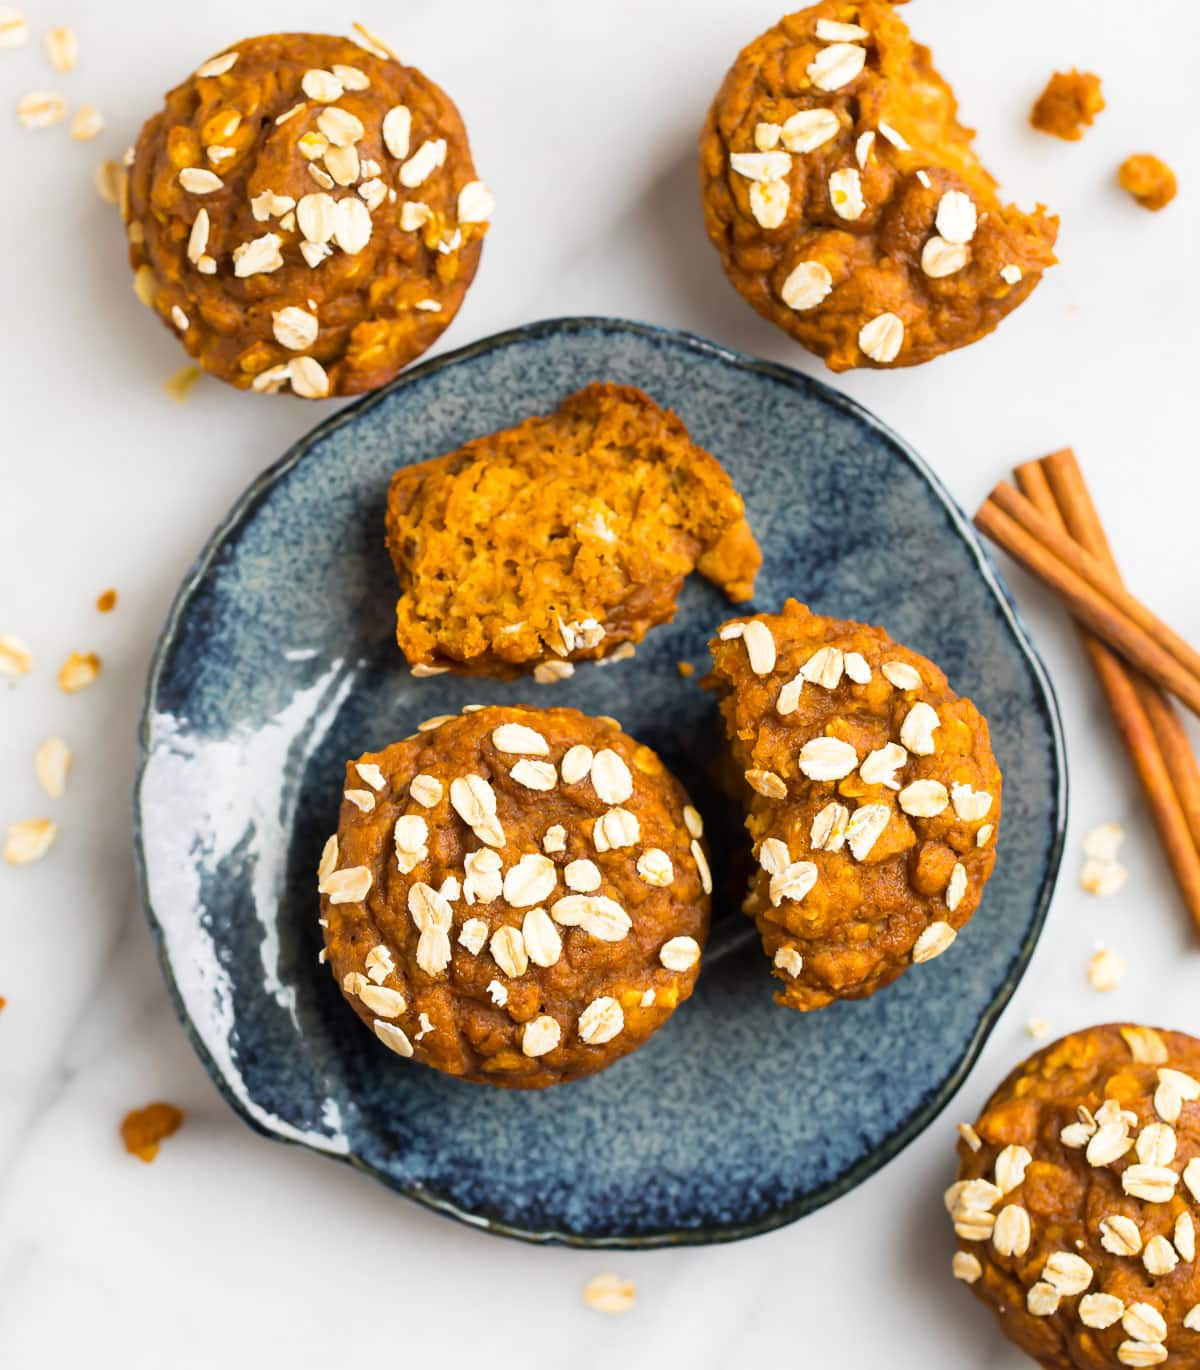 Healthy pumpkin muffins on a blue plate